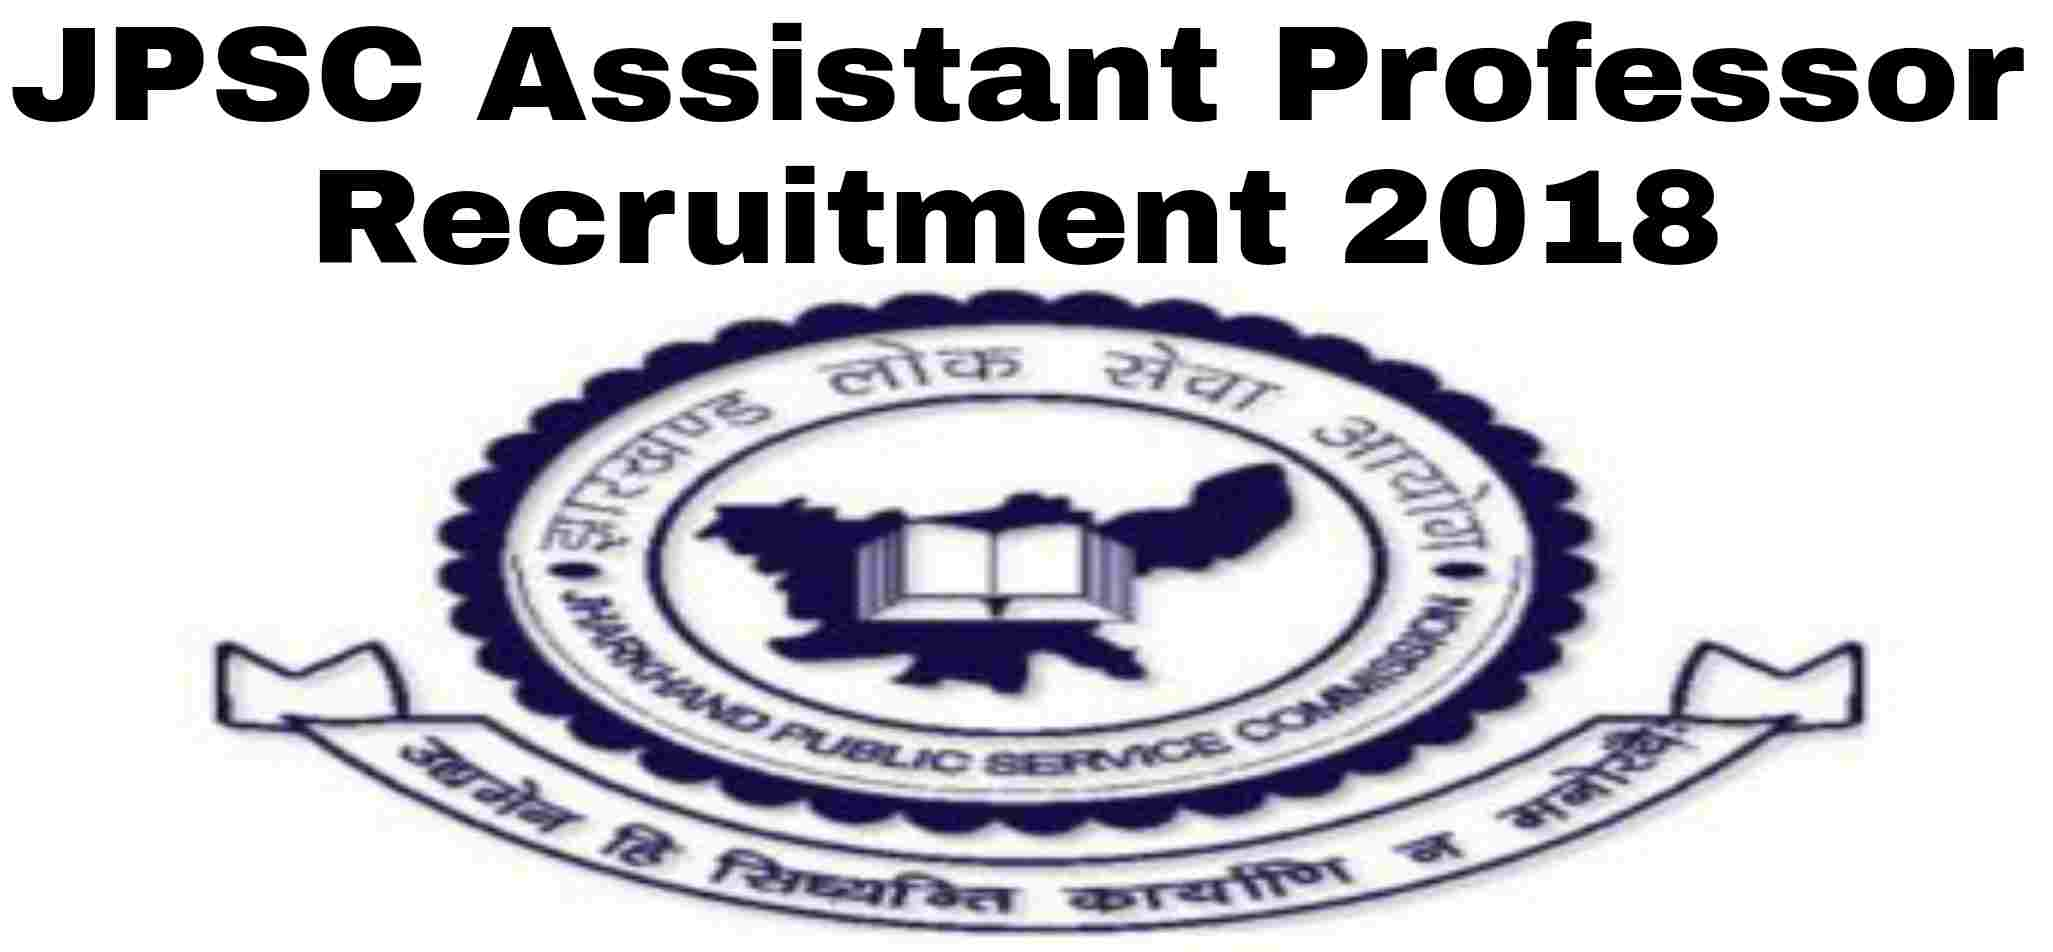 JPSC Assistant Professor Recruitment 2018